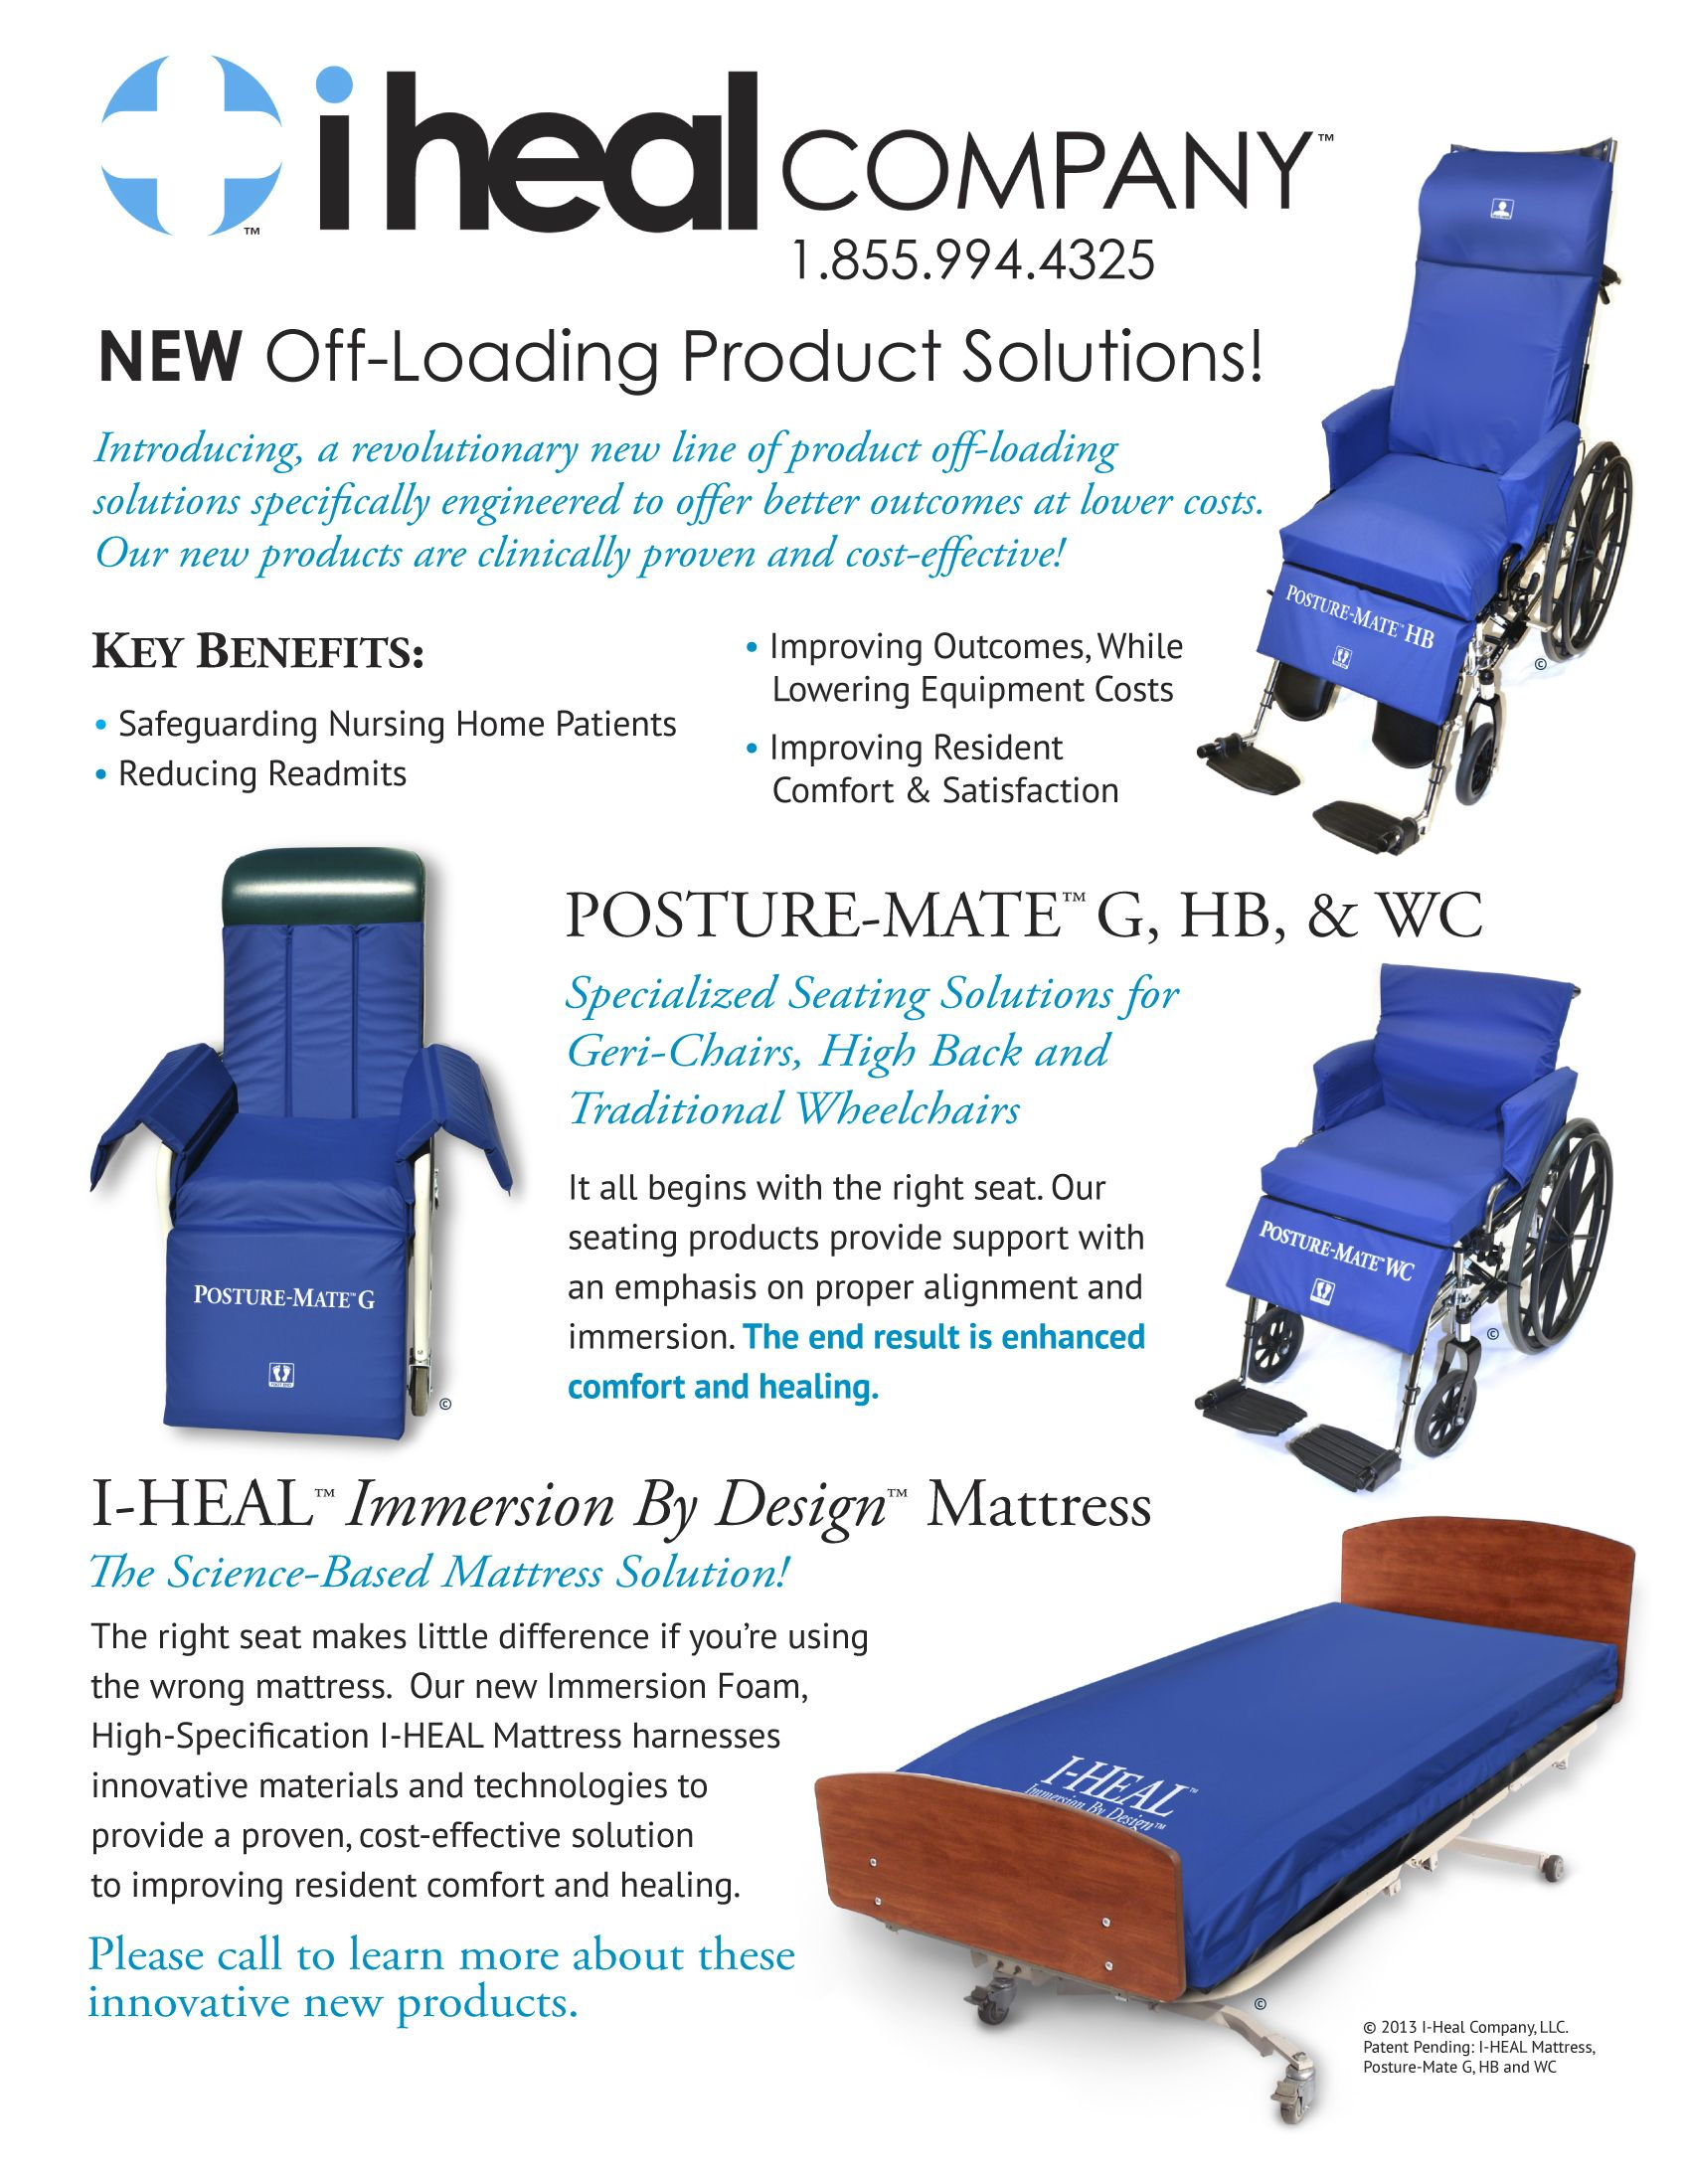 posture mate geri chair desk narrow iheal company seating systems and i heal mattress introduction off loading products healing